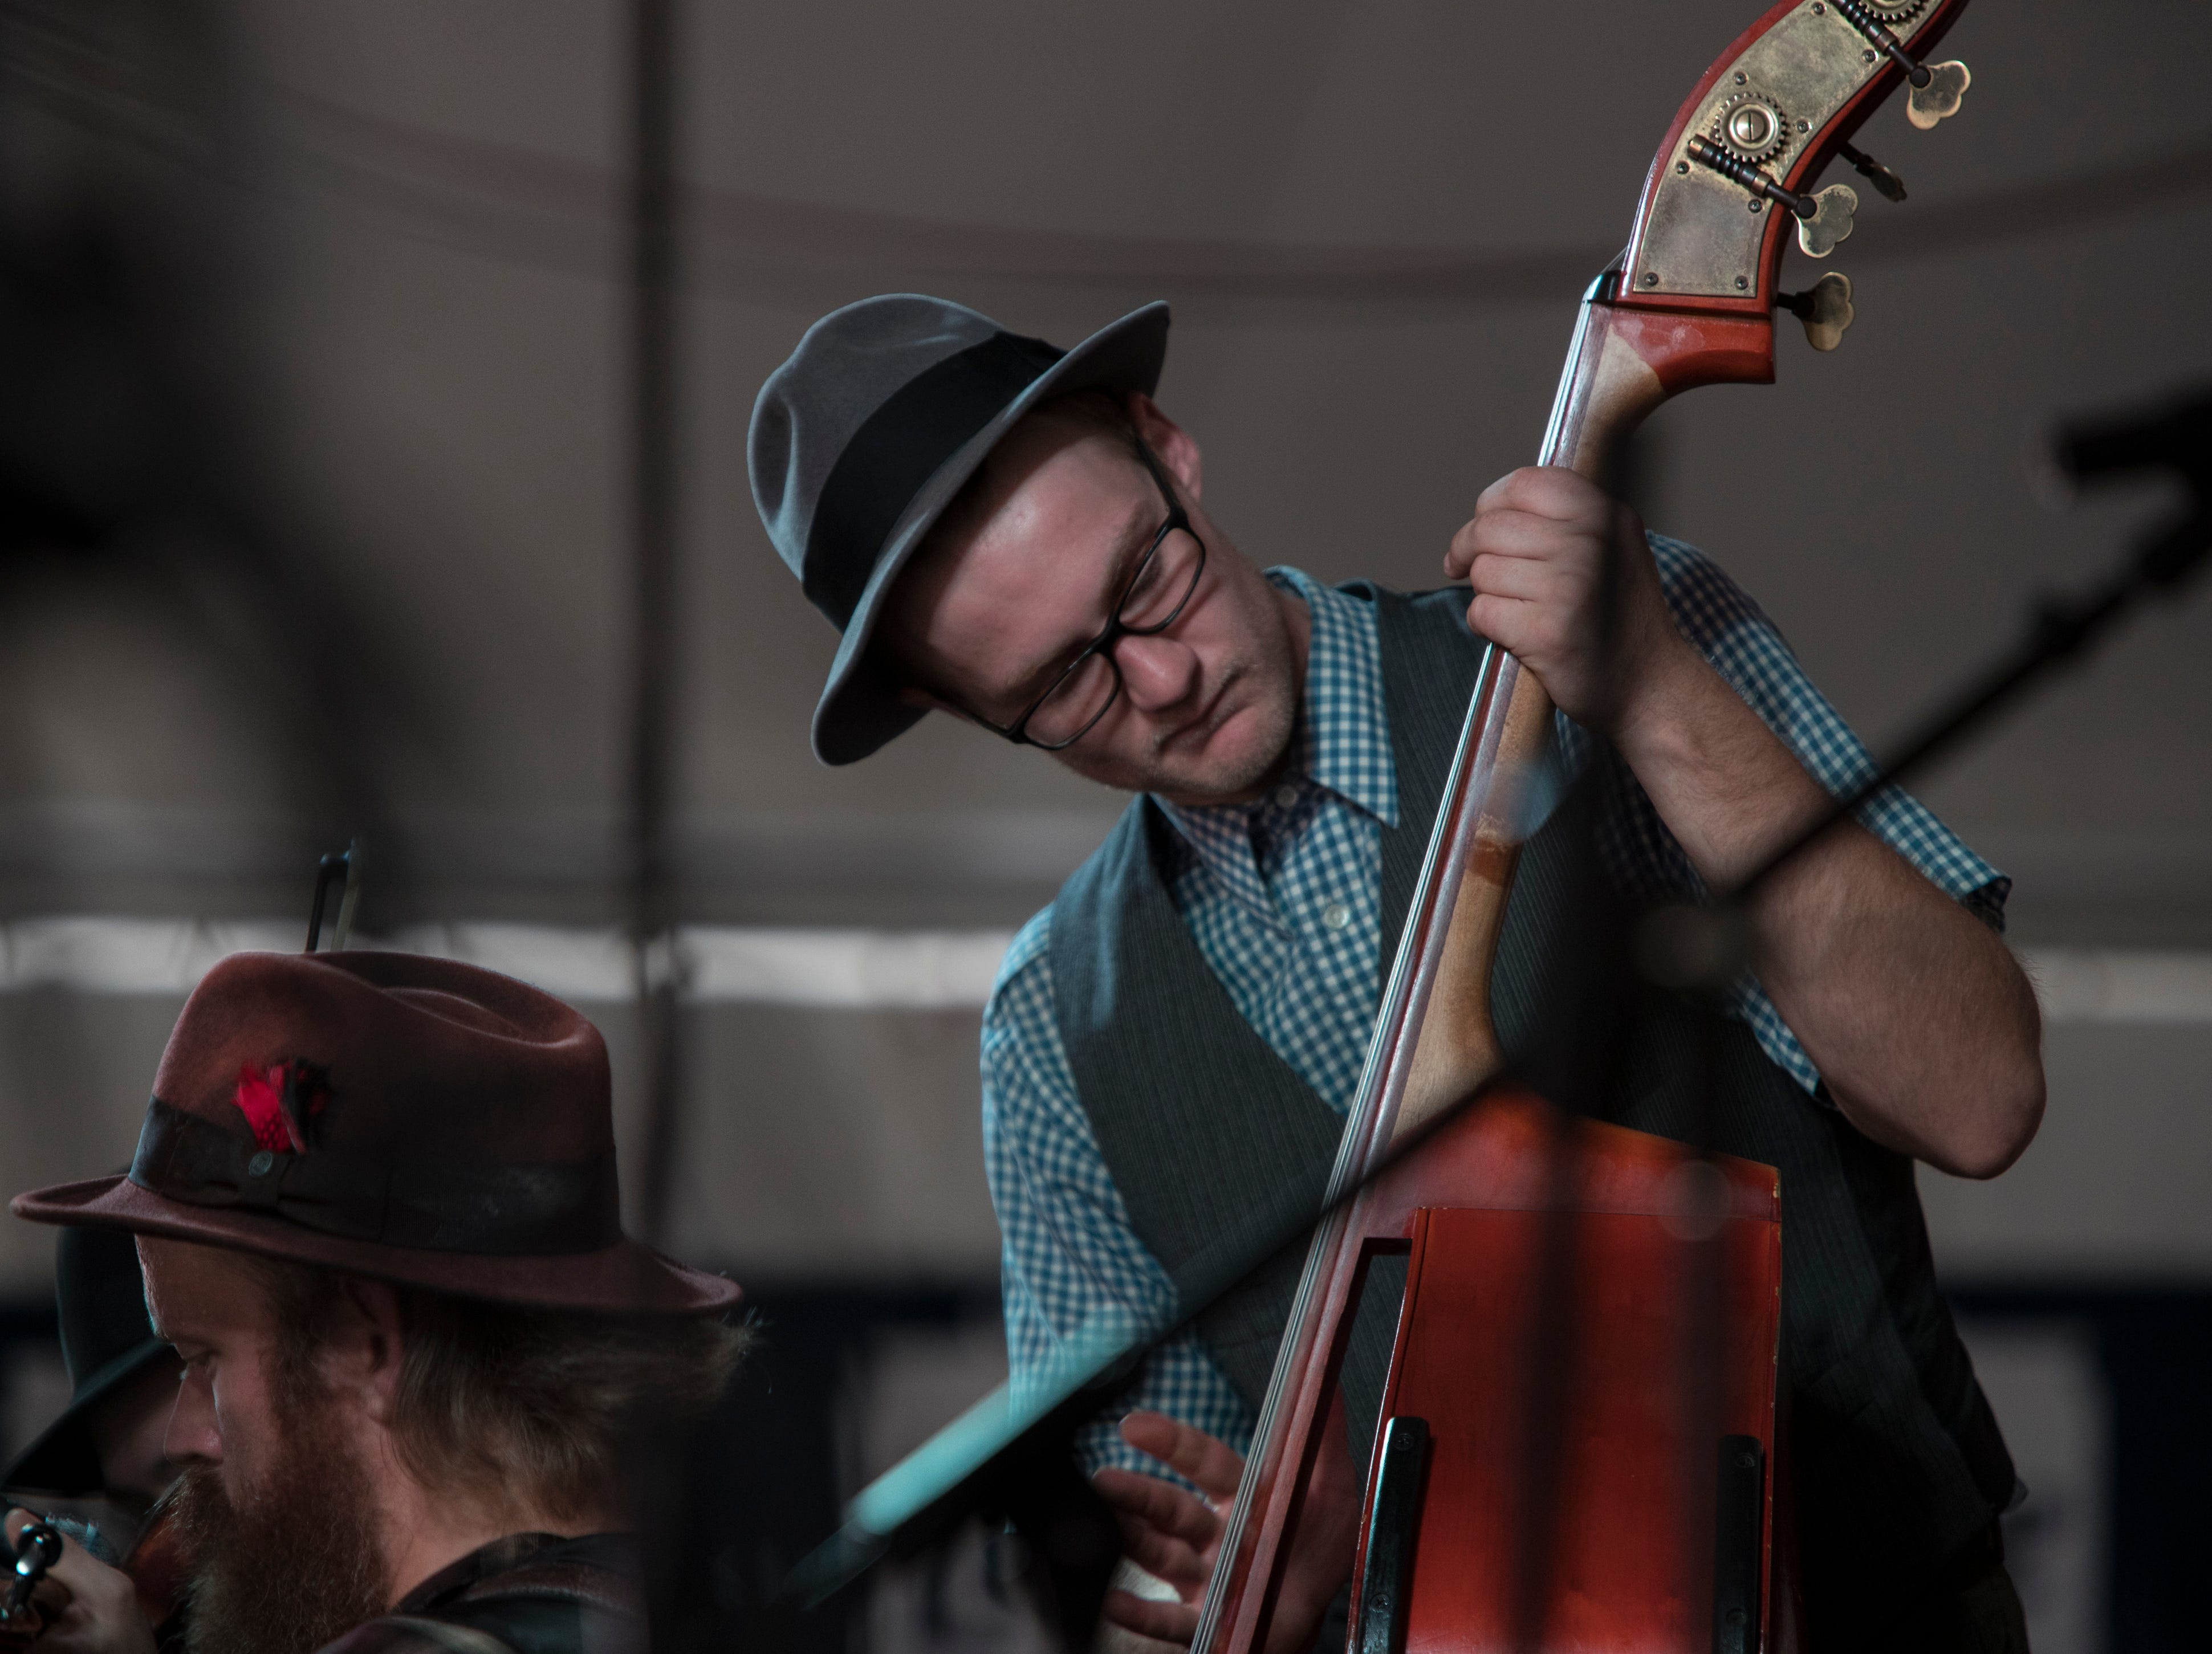 Leroy Jones of the Whiskey Bent Valley Boys slaps his bass during a performance at the Kentucky State Fair. Aug. 17, 2018.